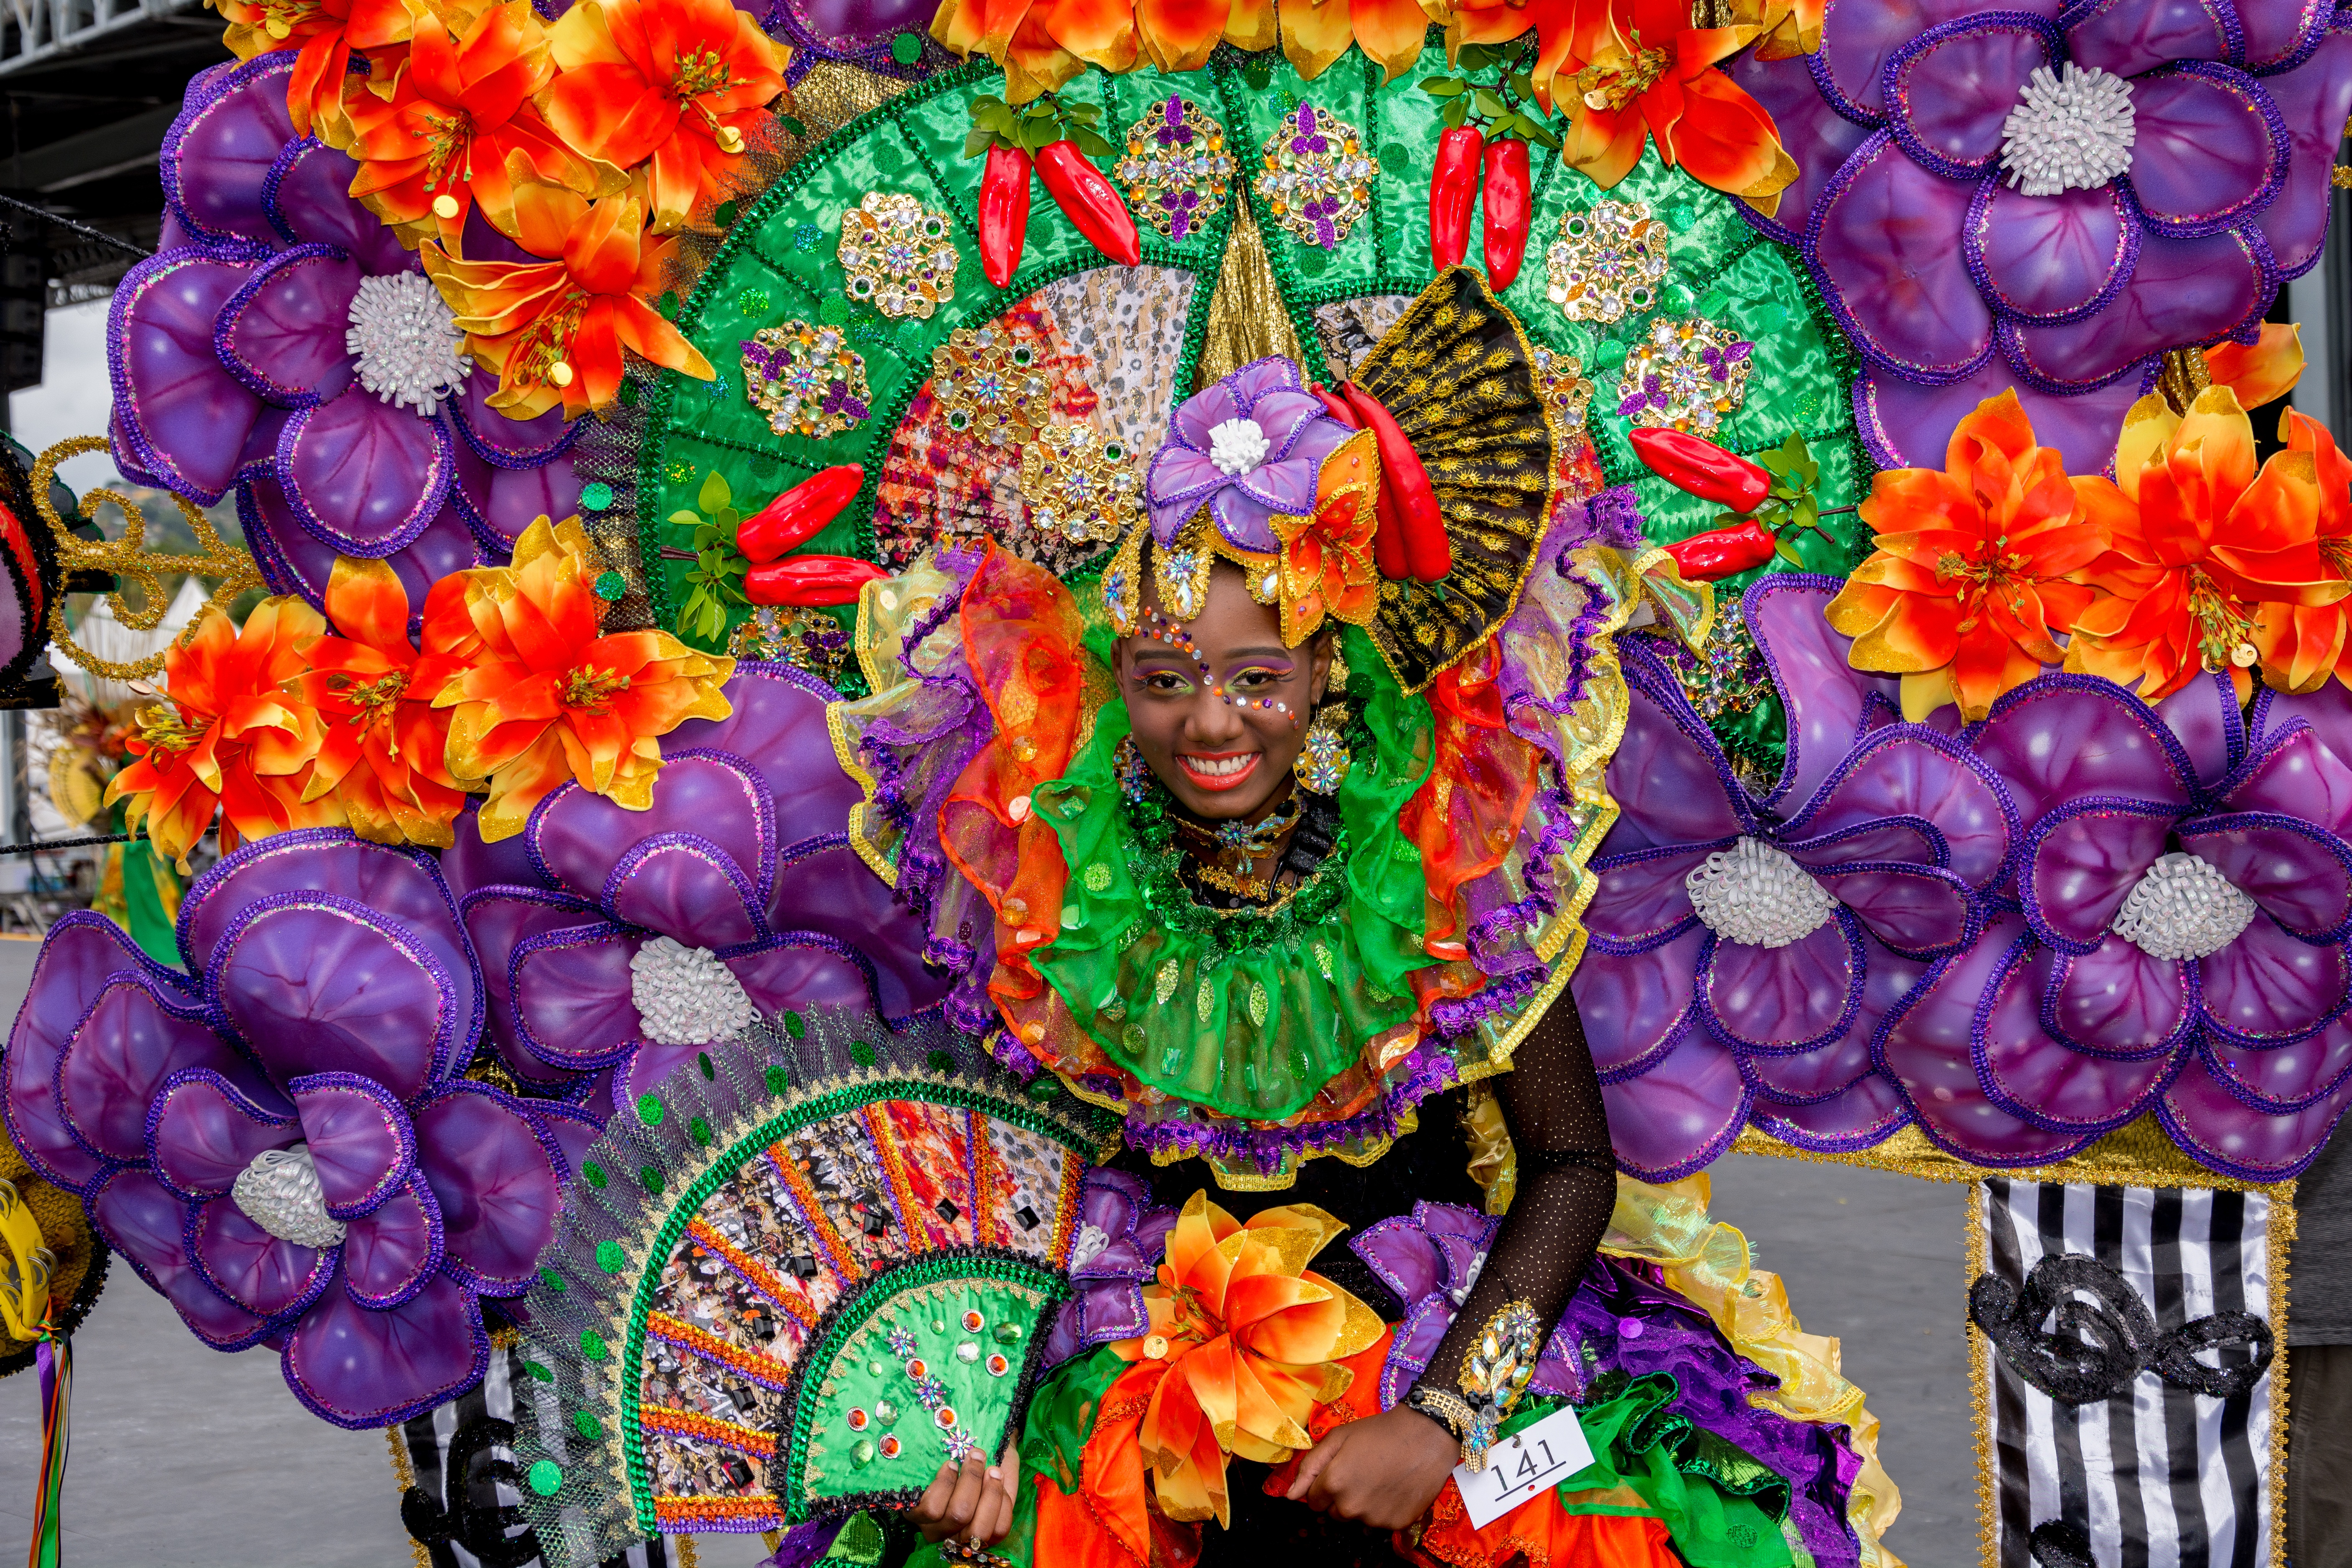 Young woman in an elaborate headdress  at the Trinidad and Tobago Carnaval.